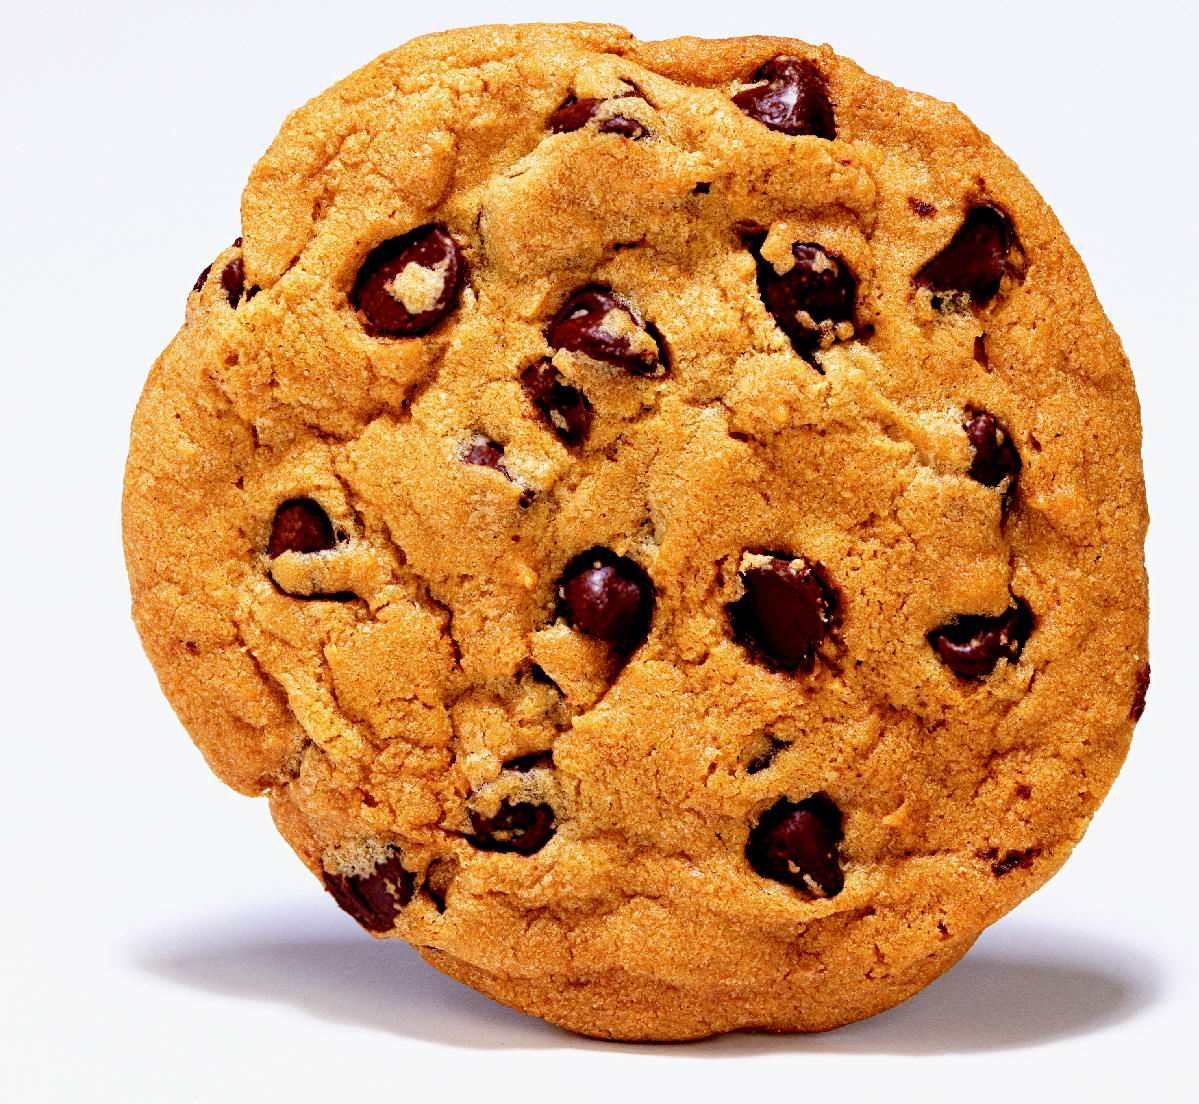 http://images3.wikia.nocookie.net/__cb20120618211312/chocolate/images/a/ab/Chocolate_chip_cookie.jpg